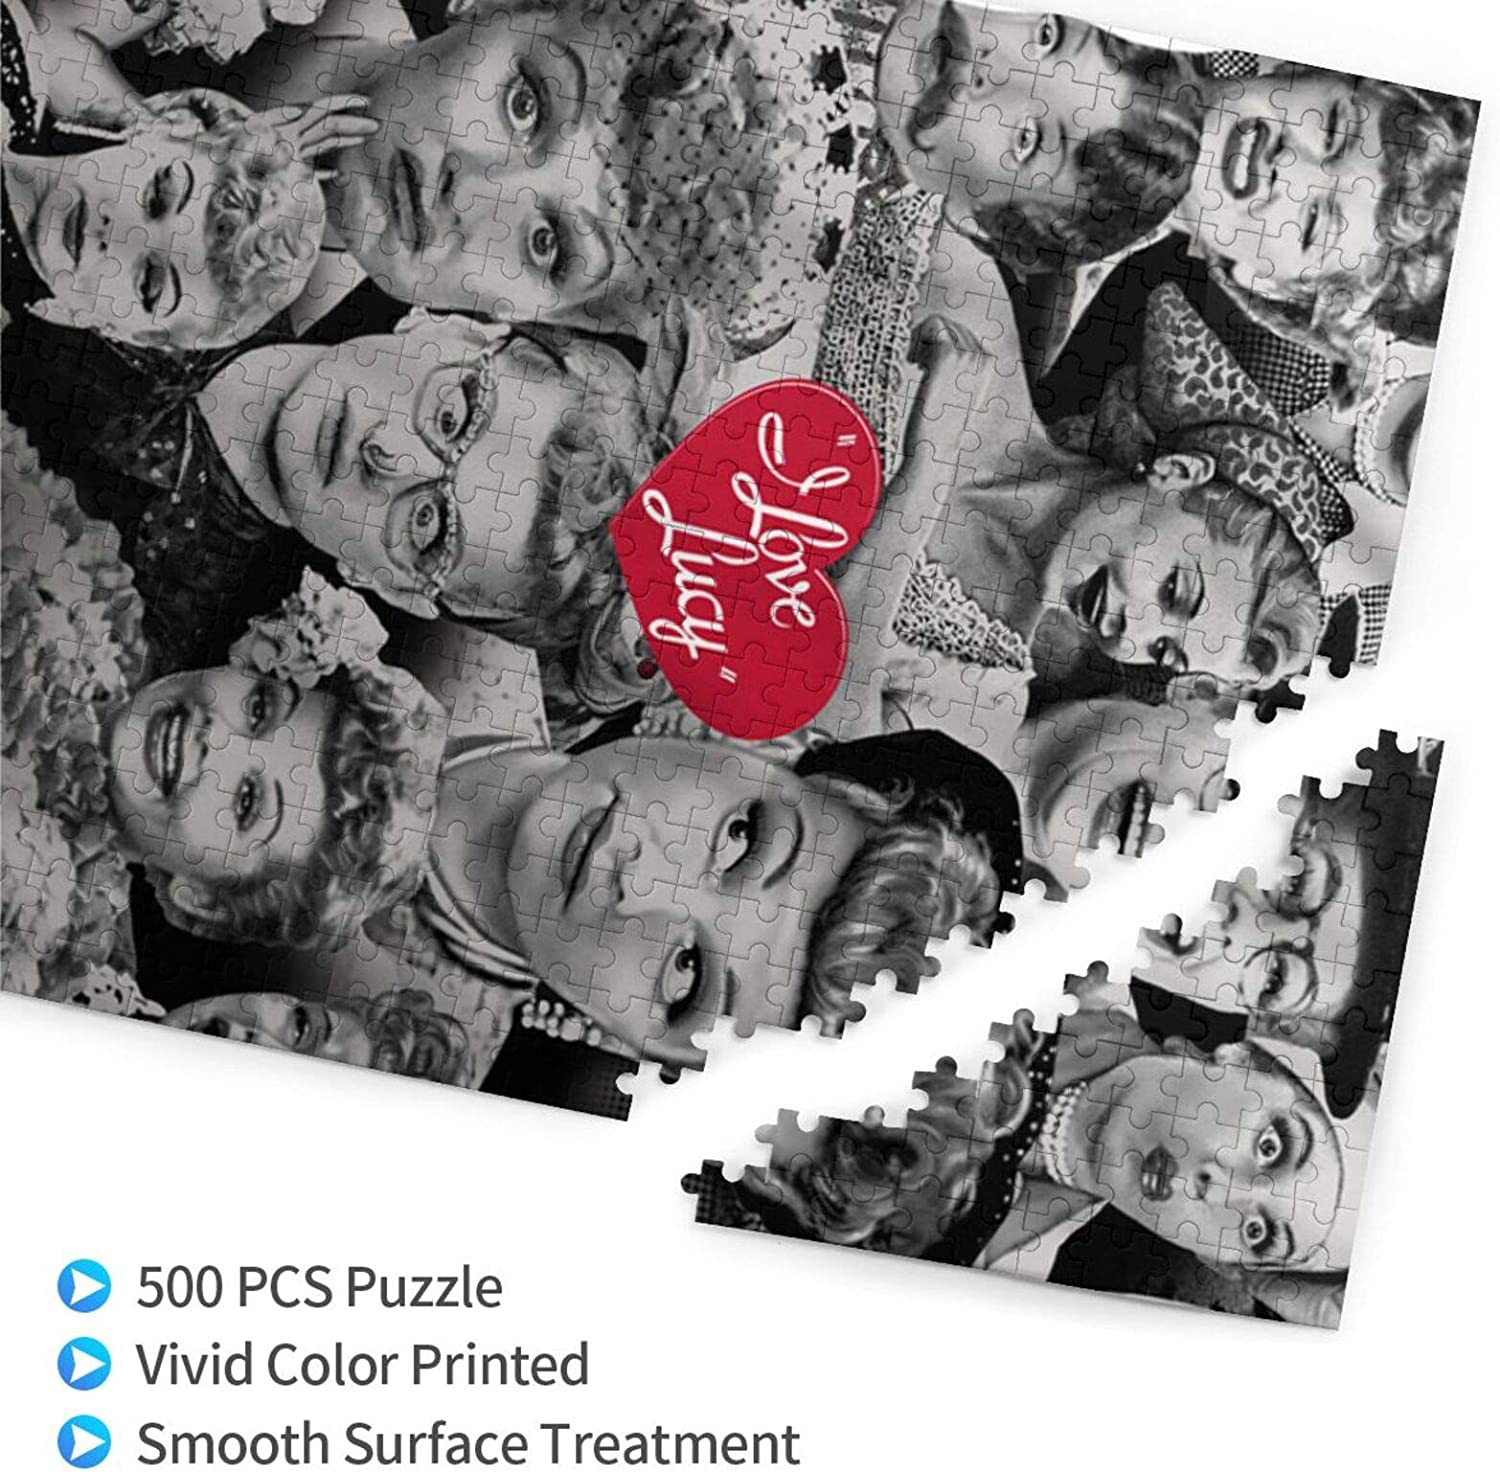 I Cute Love Cool Lu-cy Puzzles Personalized Picture Puzzle For Adults Teens Boys Girls,White,500pcs